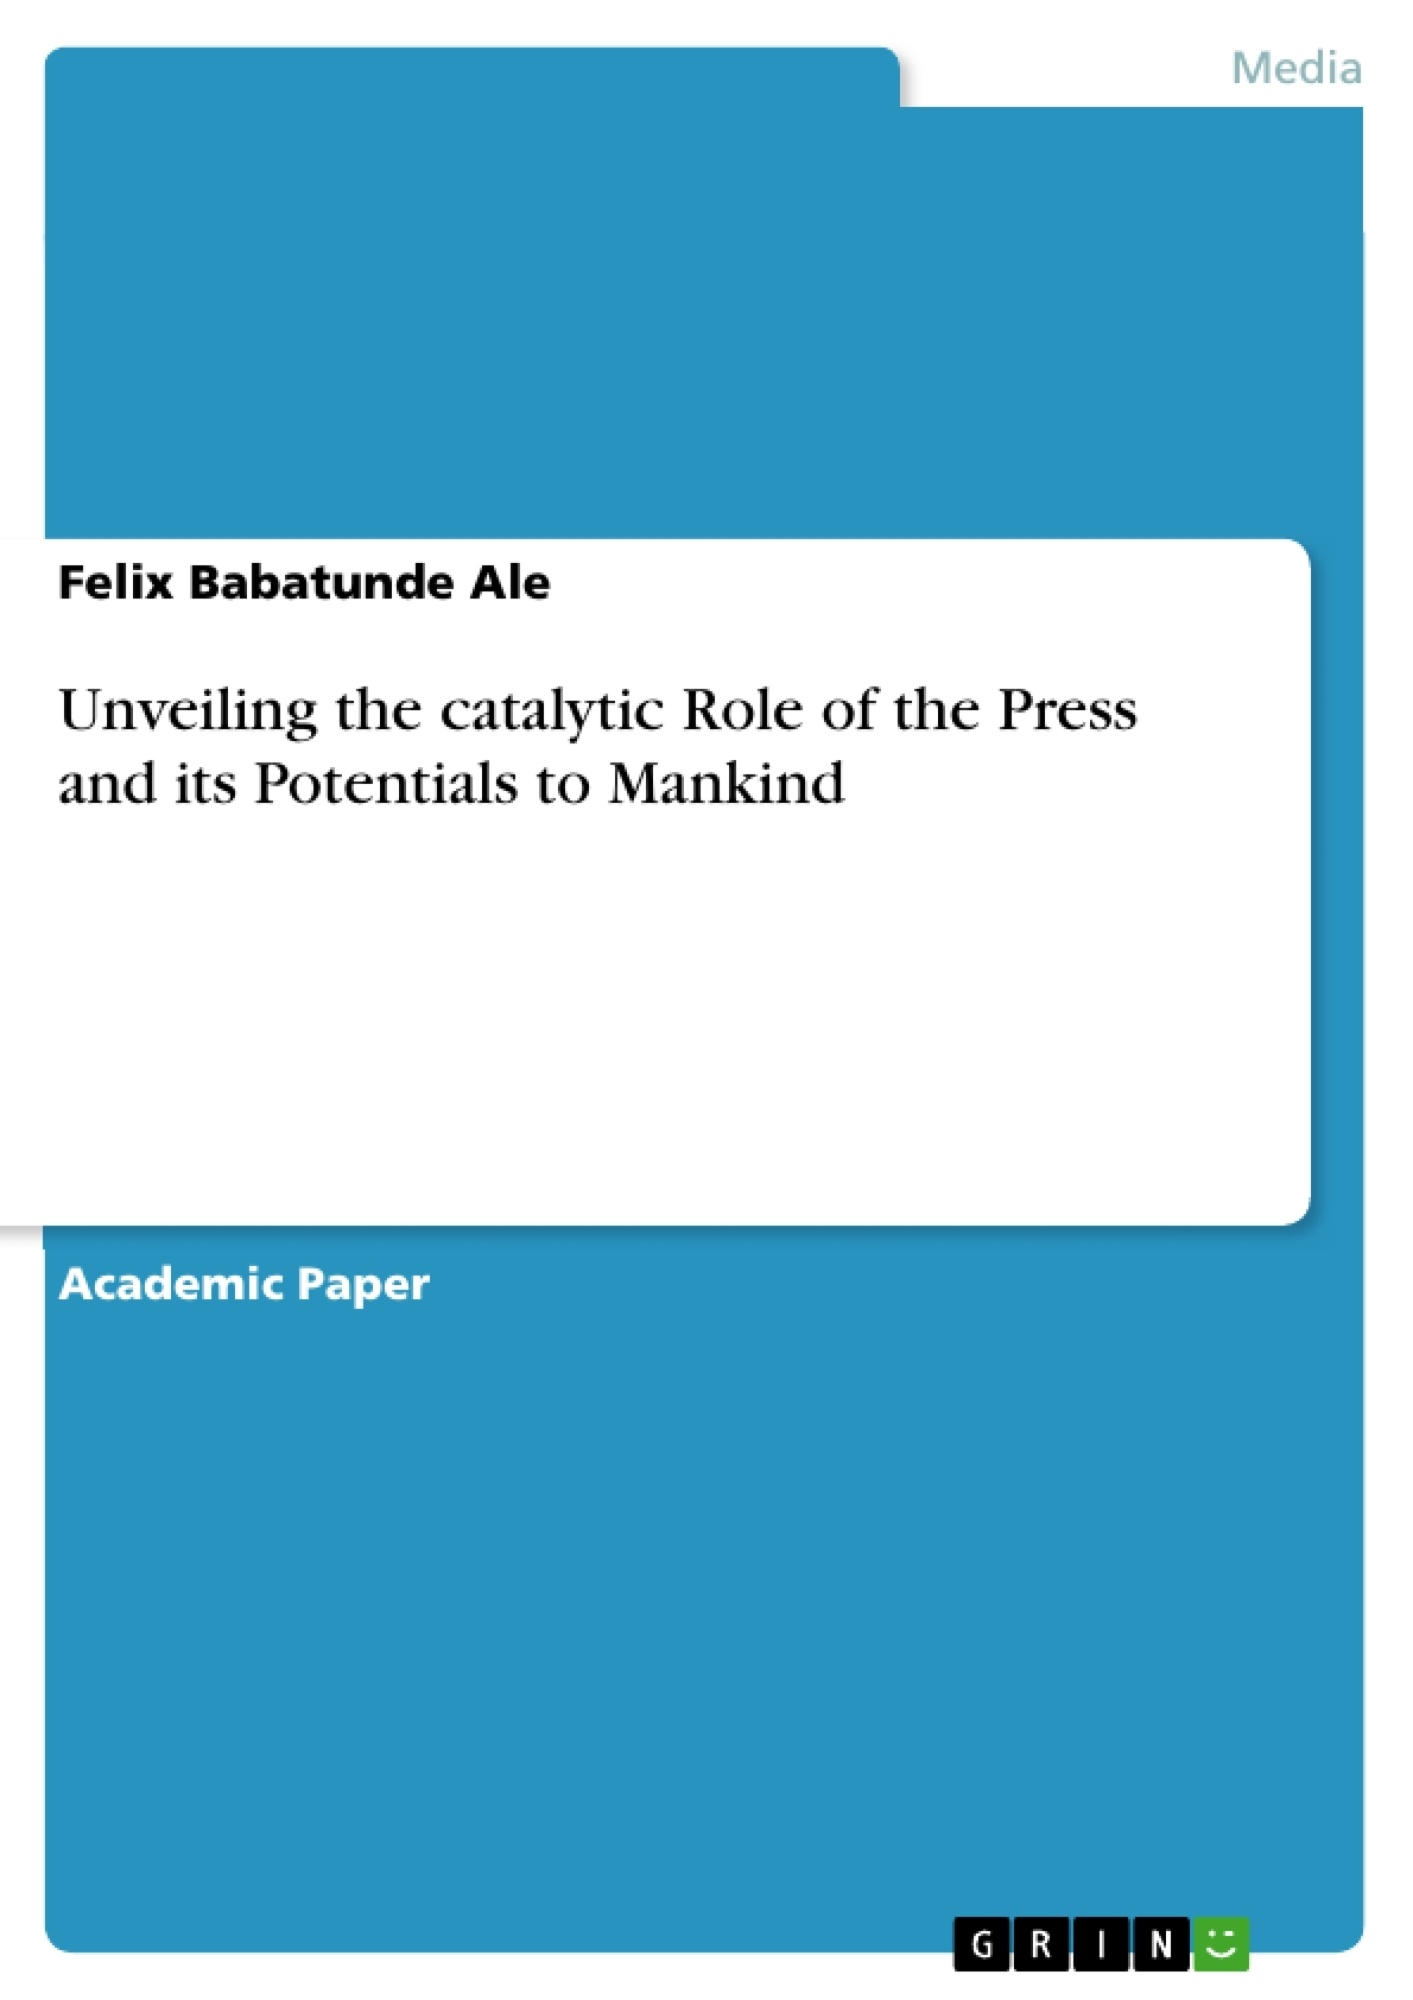 Title: Unveiling the catalytic Role of the Press and its Potentials to Mankind